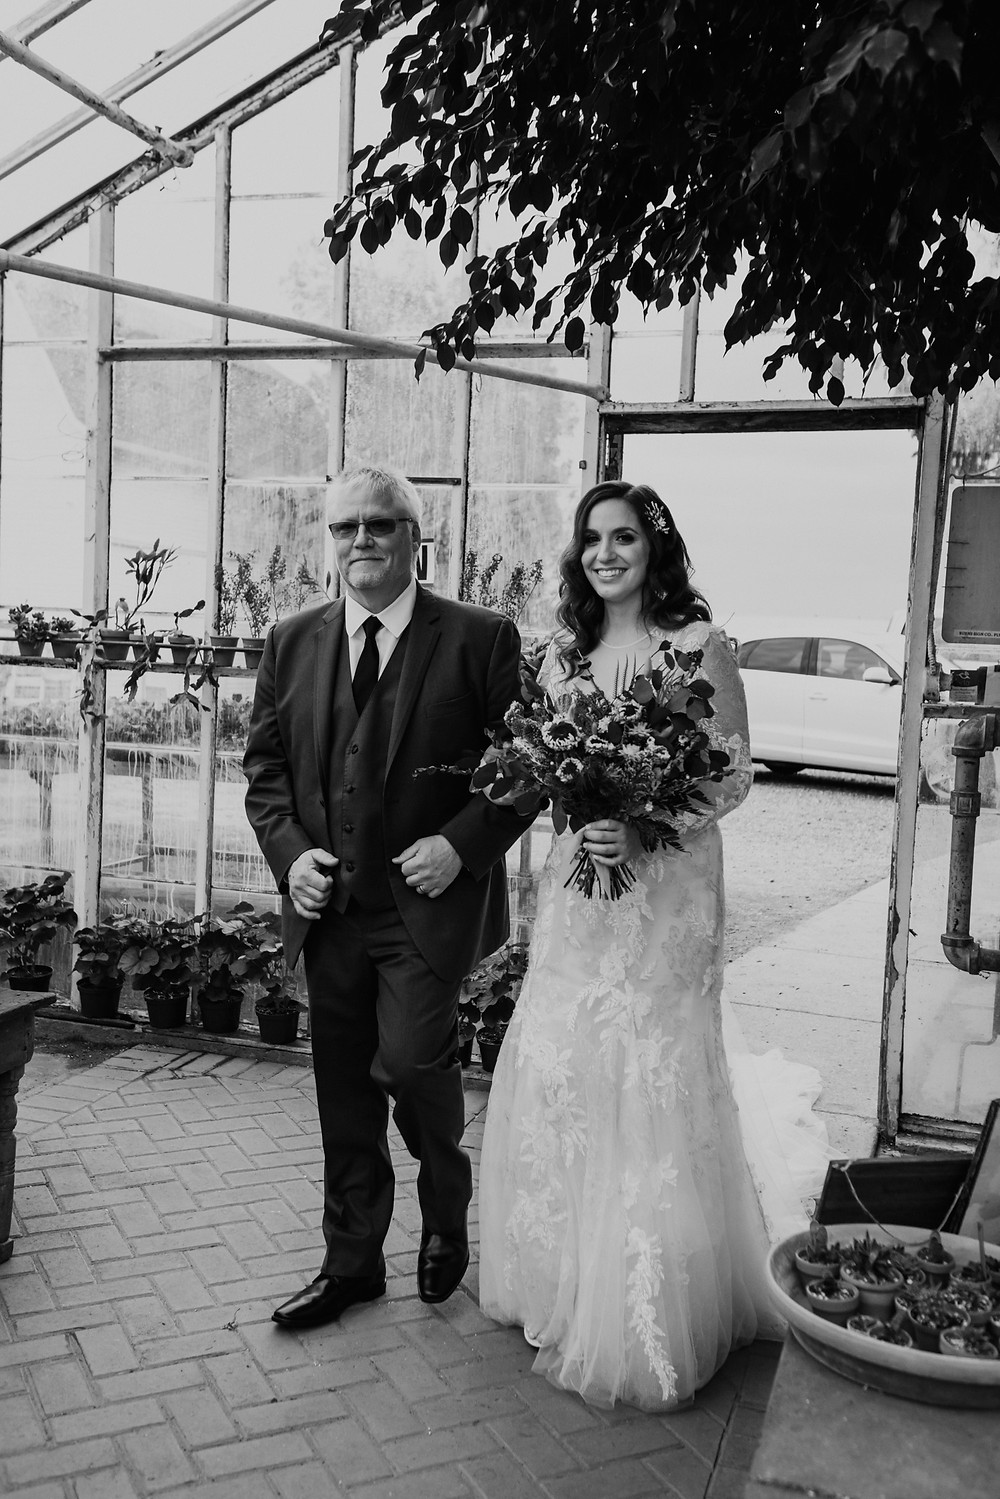 Bride walking down aisle of greenhouse wedding. Photographed by Nicole Leanne Photography.